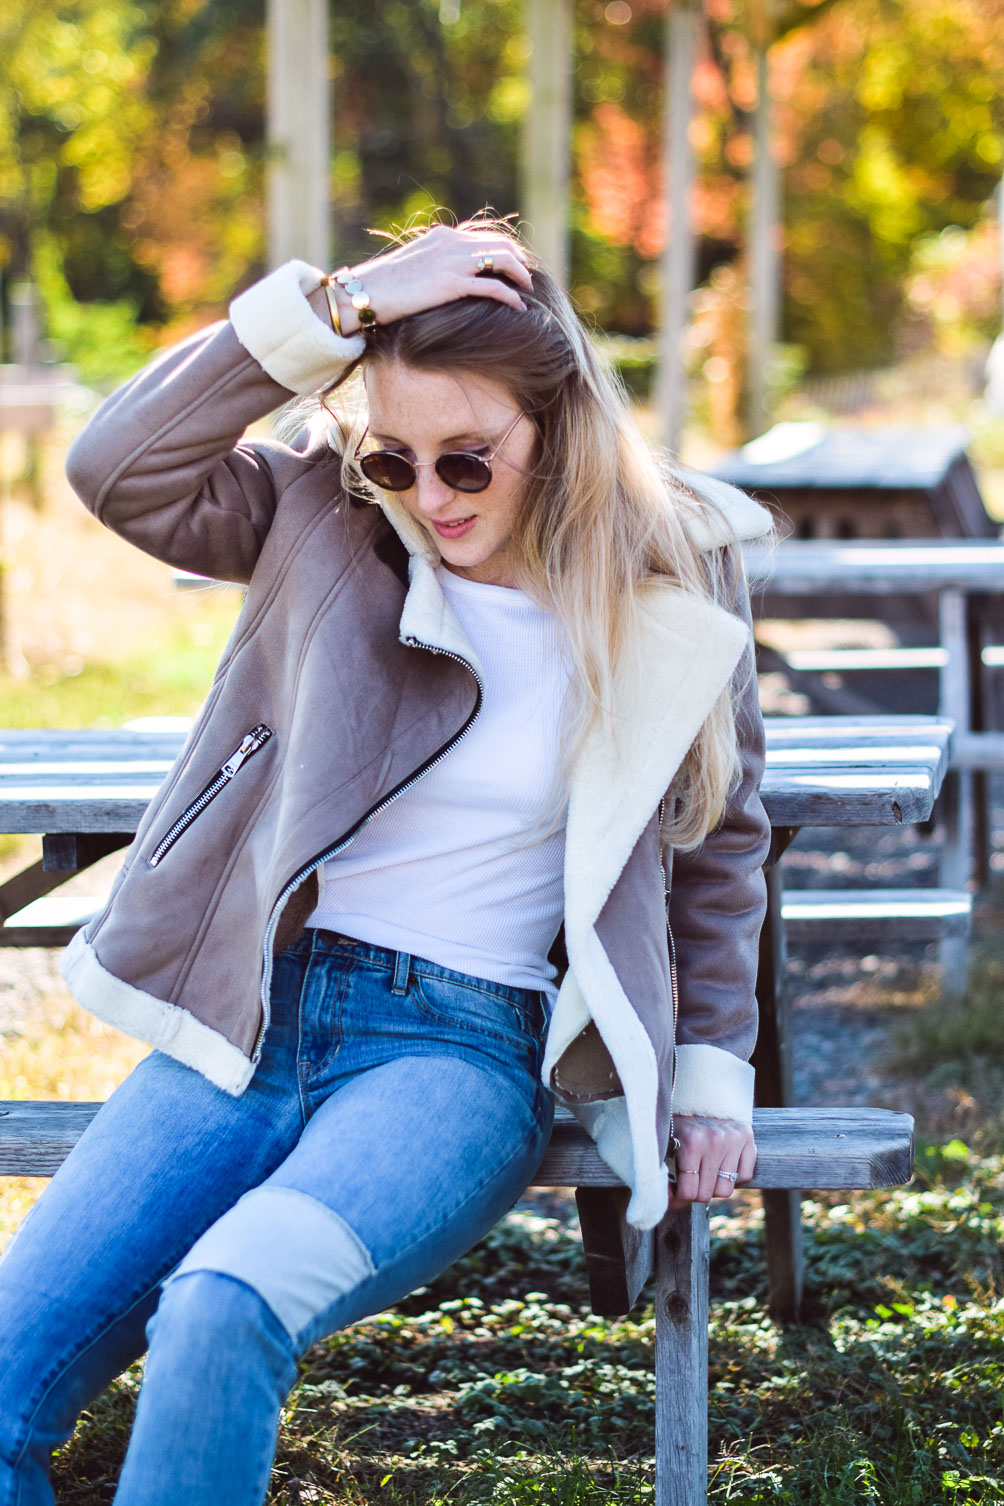 styling this faux suede moto jacket for fall and winter with a white henley, patched boyfriend jeans, and tan slides